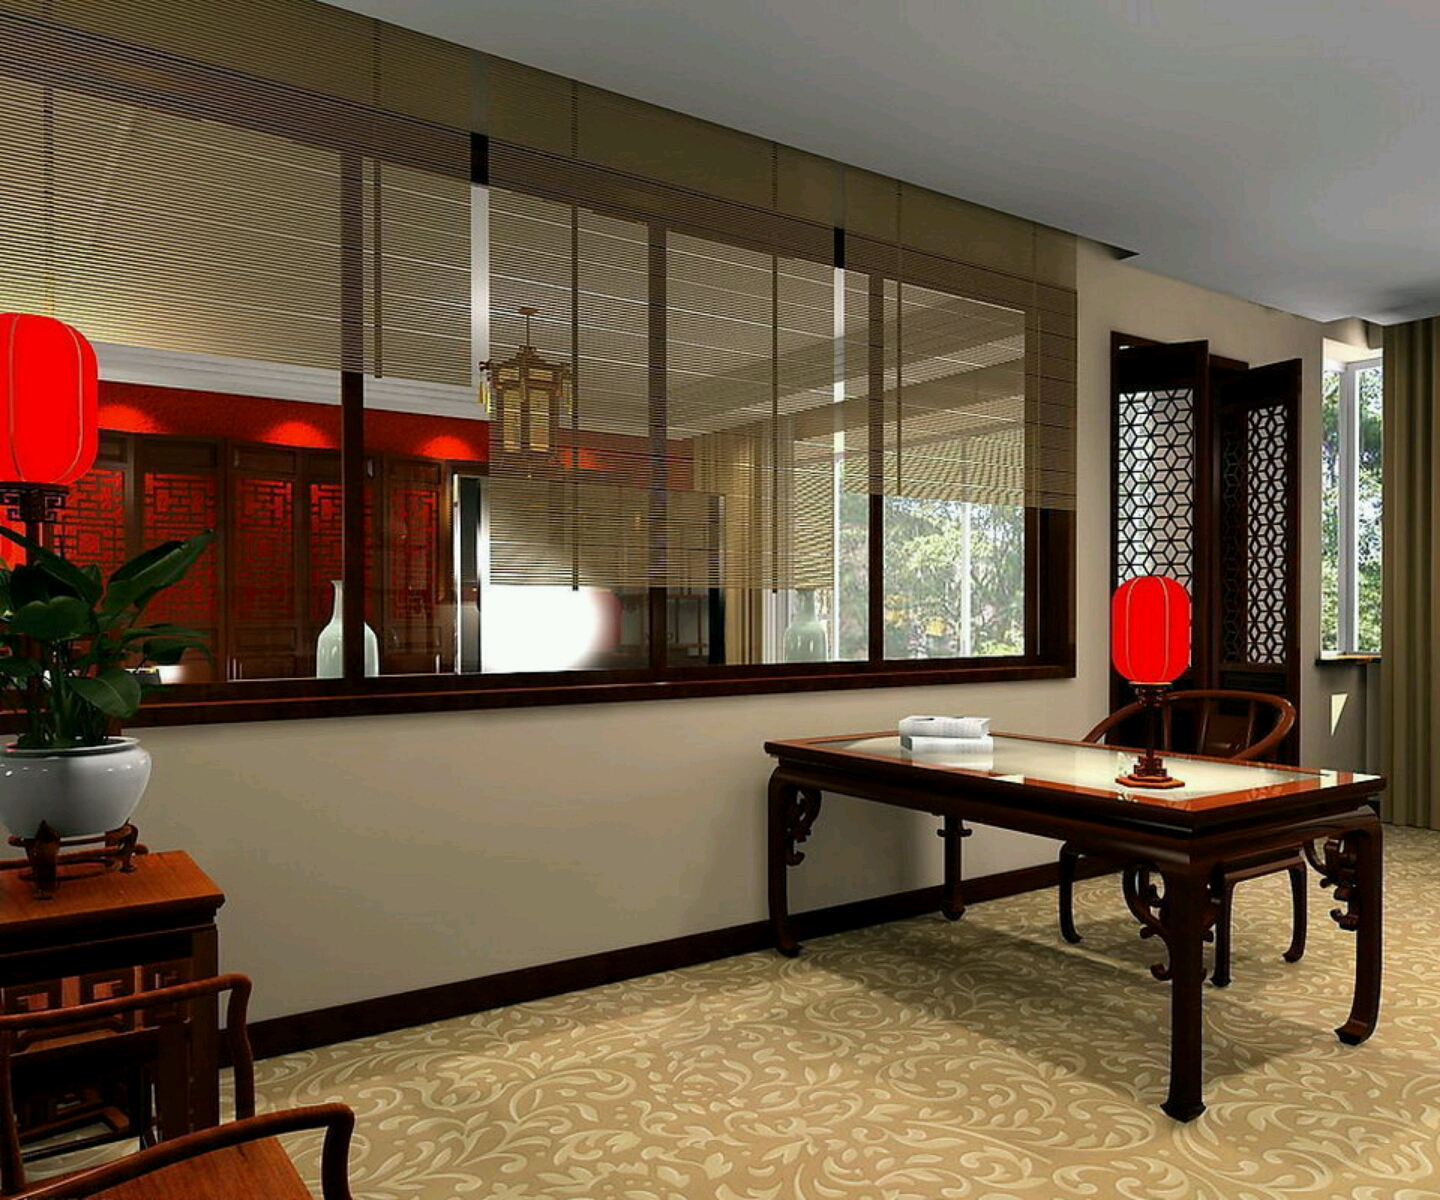 Study Room Interior Design Ideas 1 Study Room Interior: New Home Designs Latest.: Modern Homes Studyrooms Interior